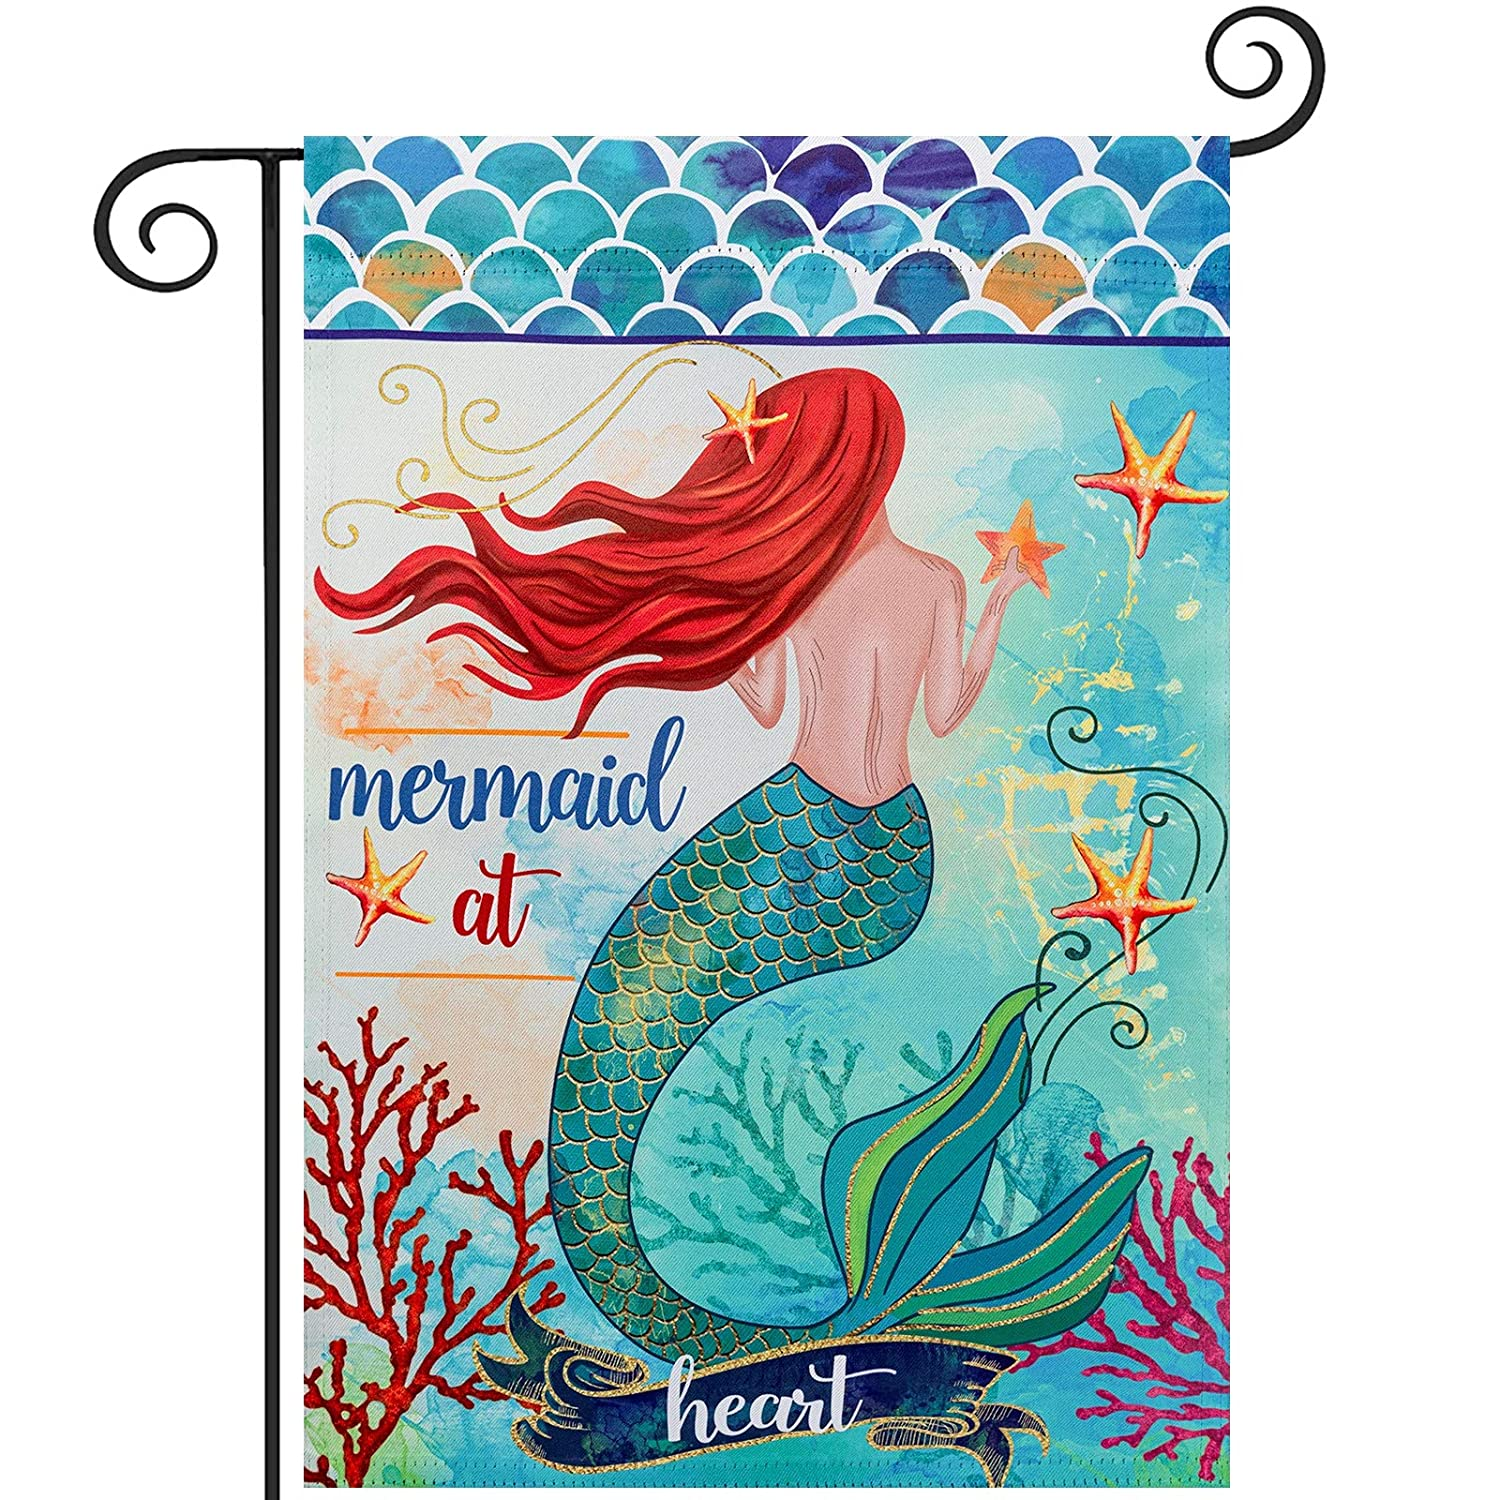 Mermaid at Heart Summer Garden Flag, hogardeck Premium Polyester Yard Flag, Vertical Double Sided Vividly Colourd Holiday Home Decor, Outdoor Indoor Front Porch Decor, 12.5 x 18 inch